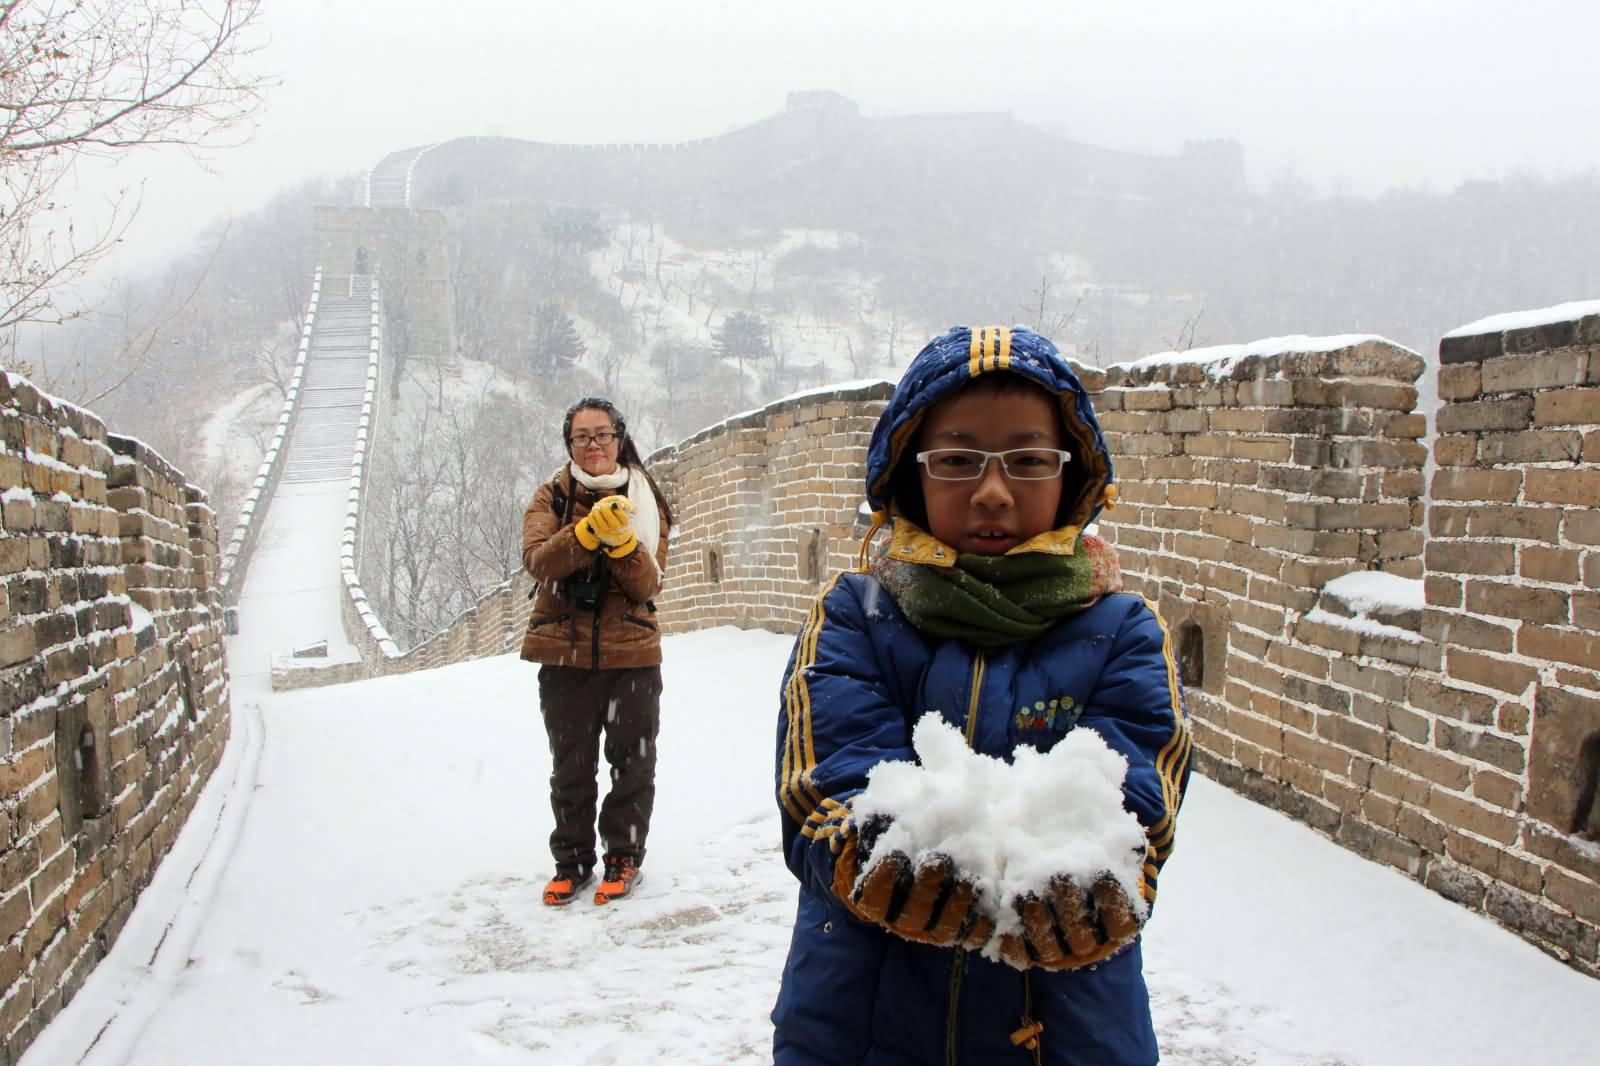 65 Incredible Pictures Of The Great Wall Of China